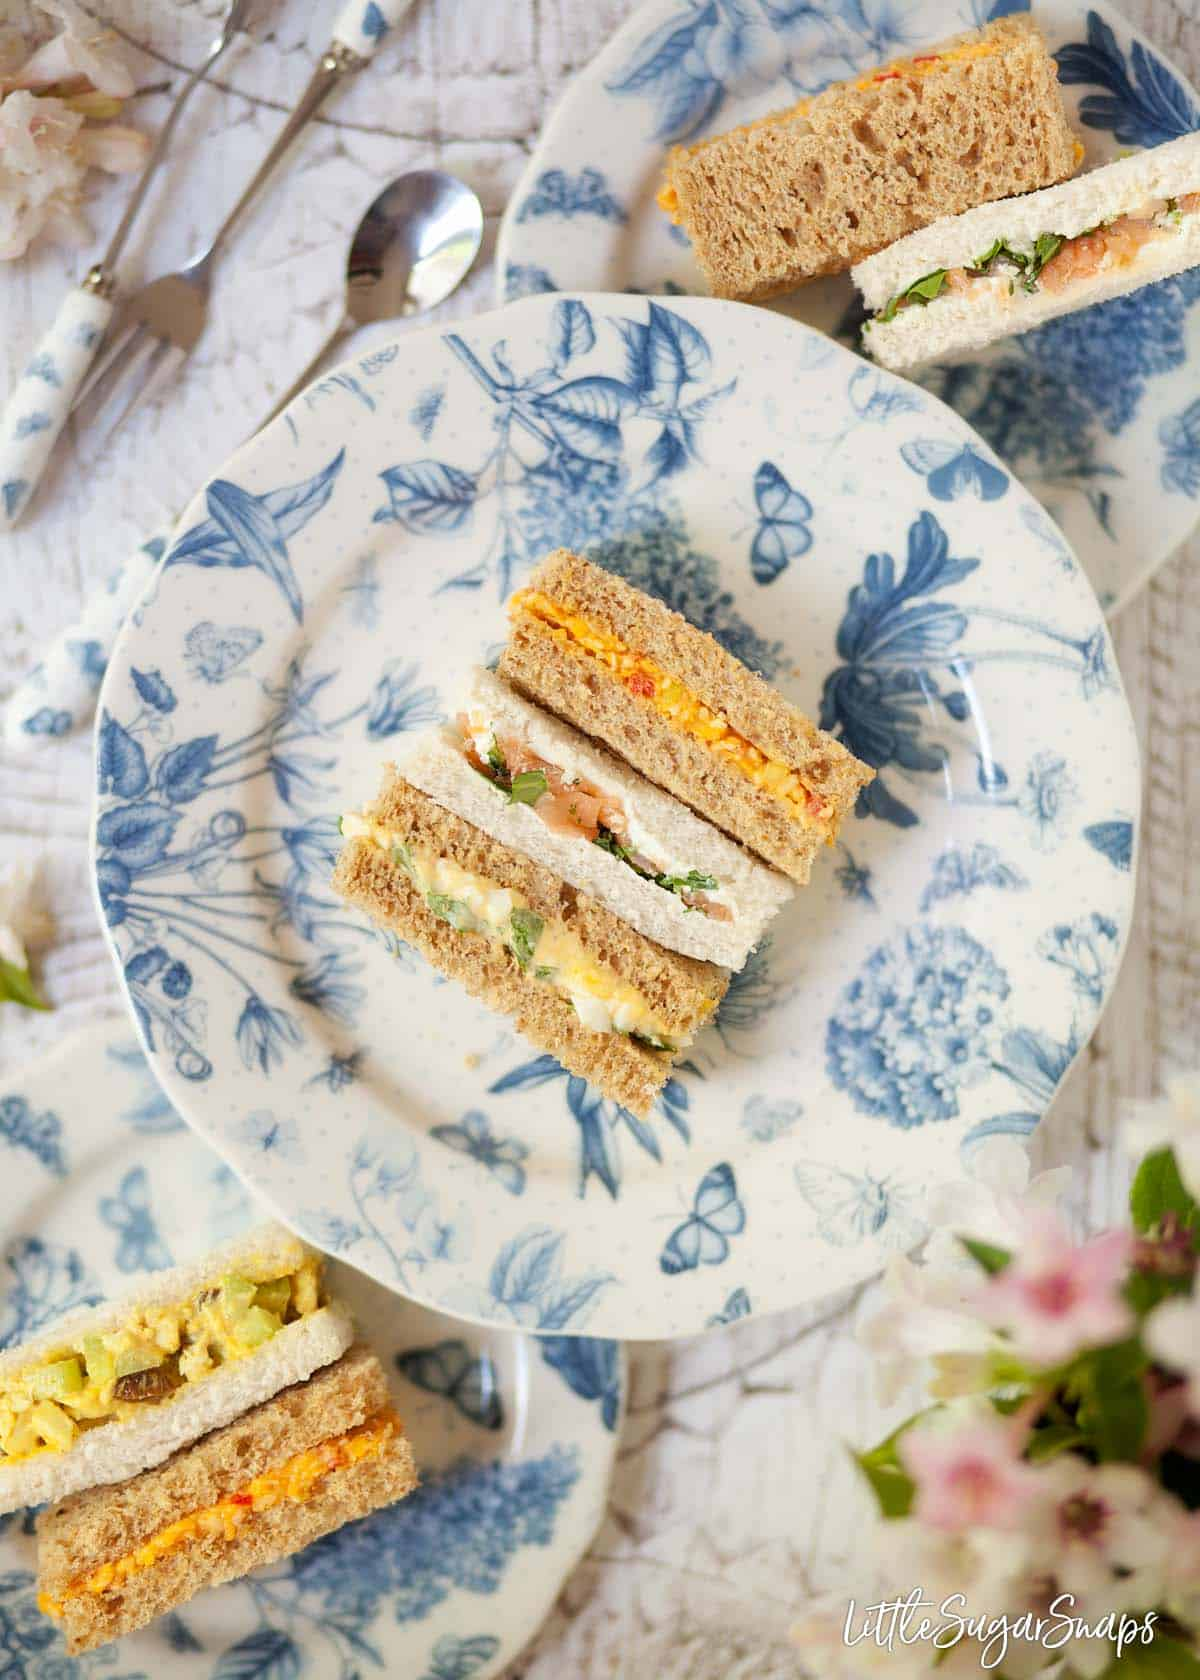 Mixed afternoon tea sandwiches served on blue and white crockery. The middle plate has 3 sandwiches and 2 smaller plates at each side have 2 sandwiches. Flavours include cheese savoury sandwiches, smoked salmon and cream cheese sandwiches, devilled egg sandwiches and coronation chicken sandwiches